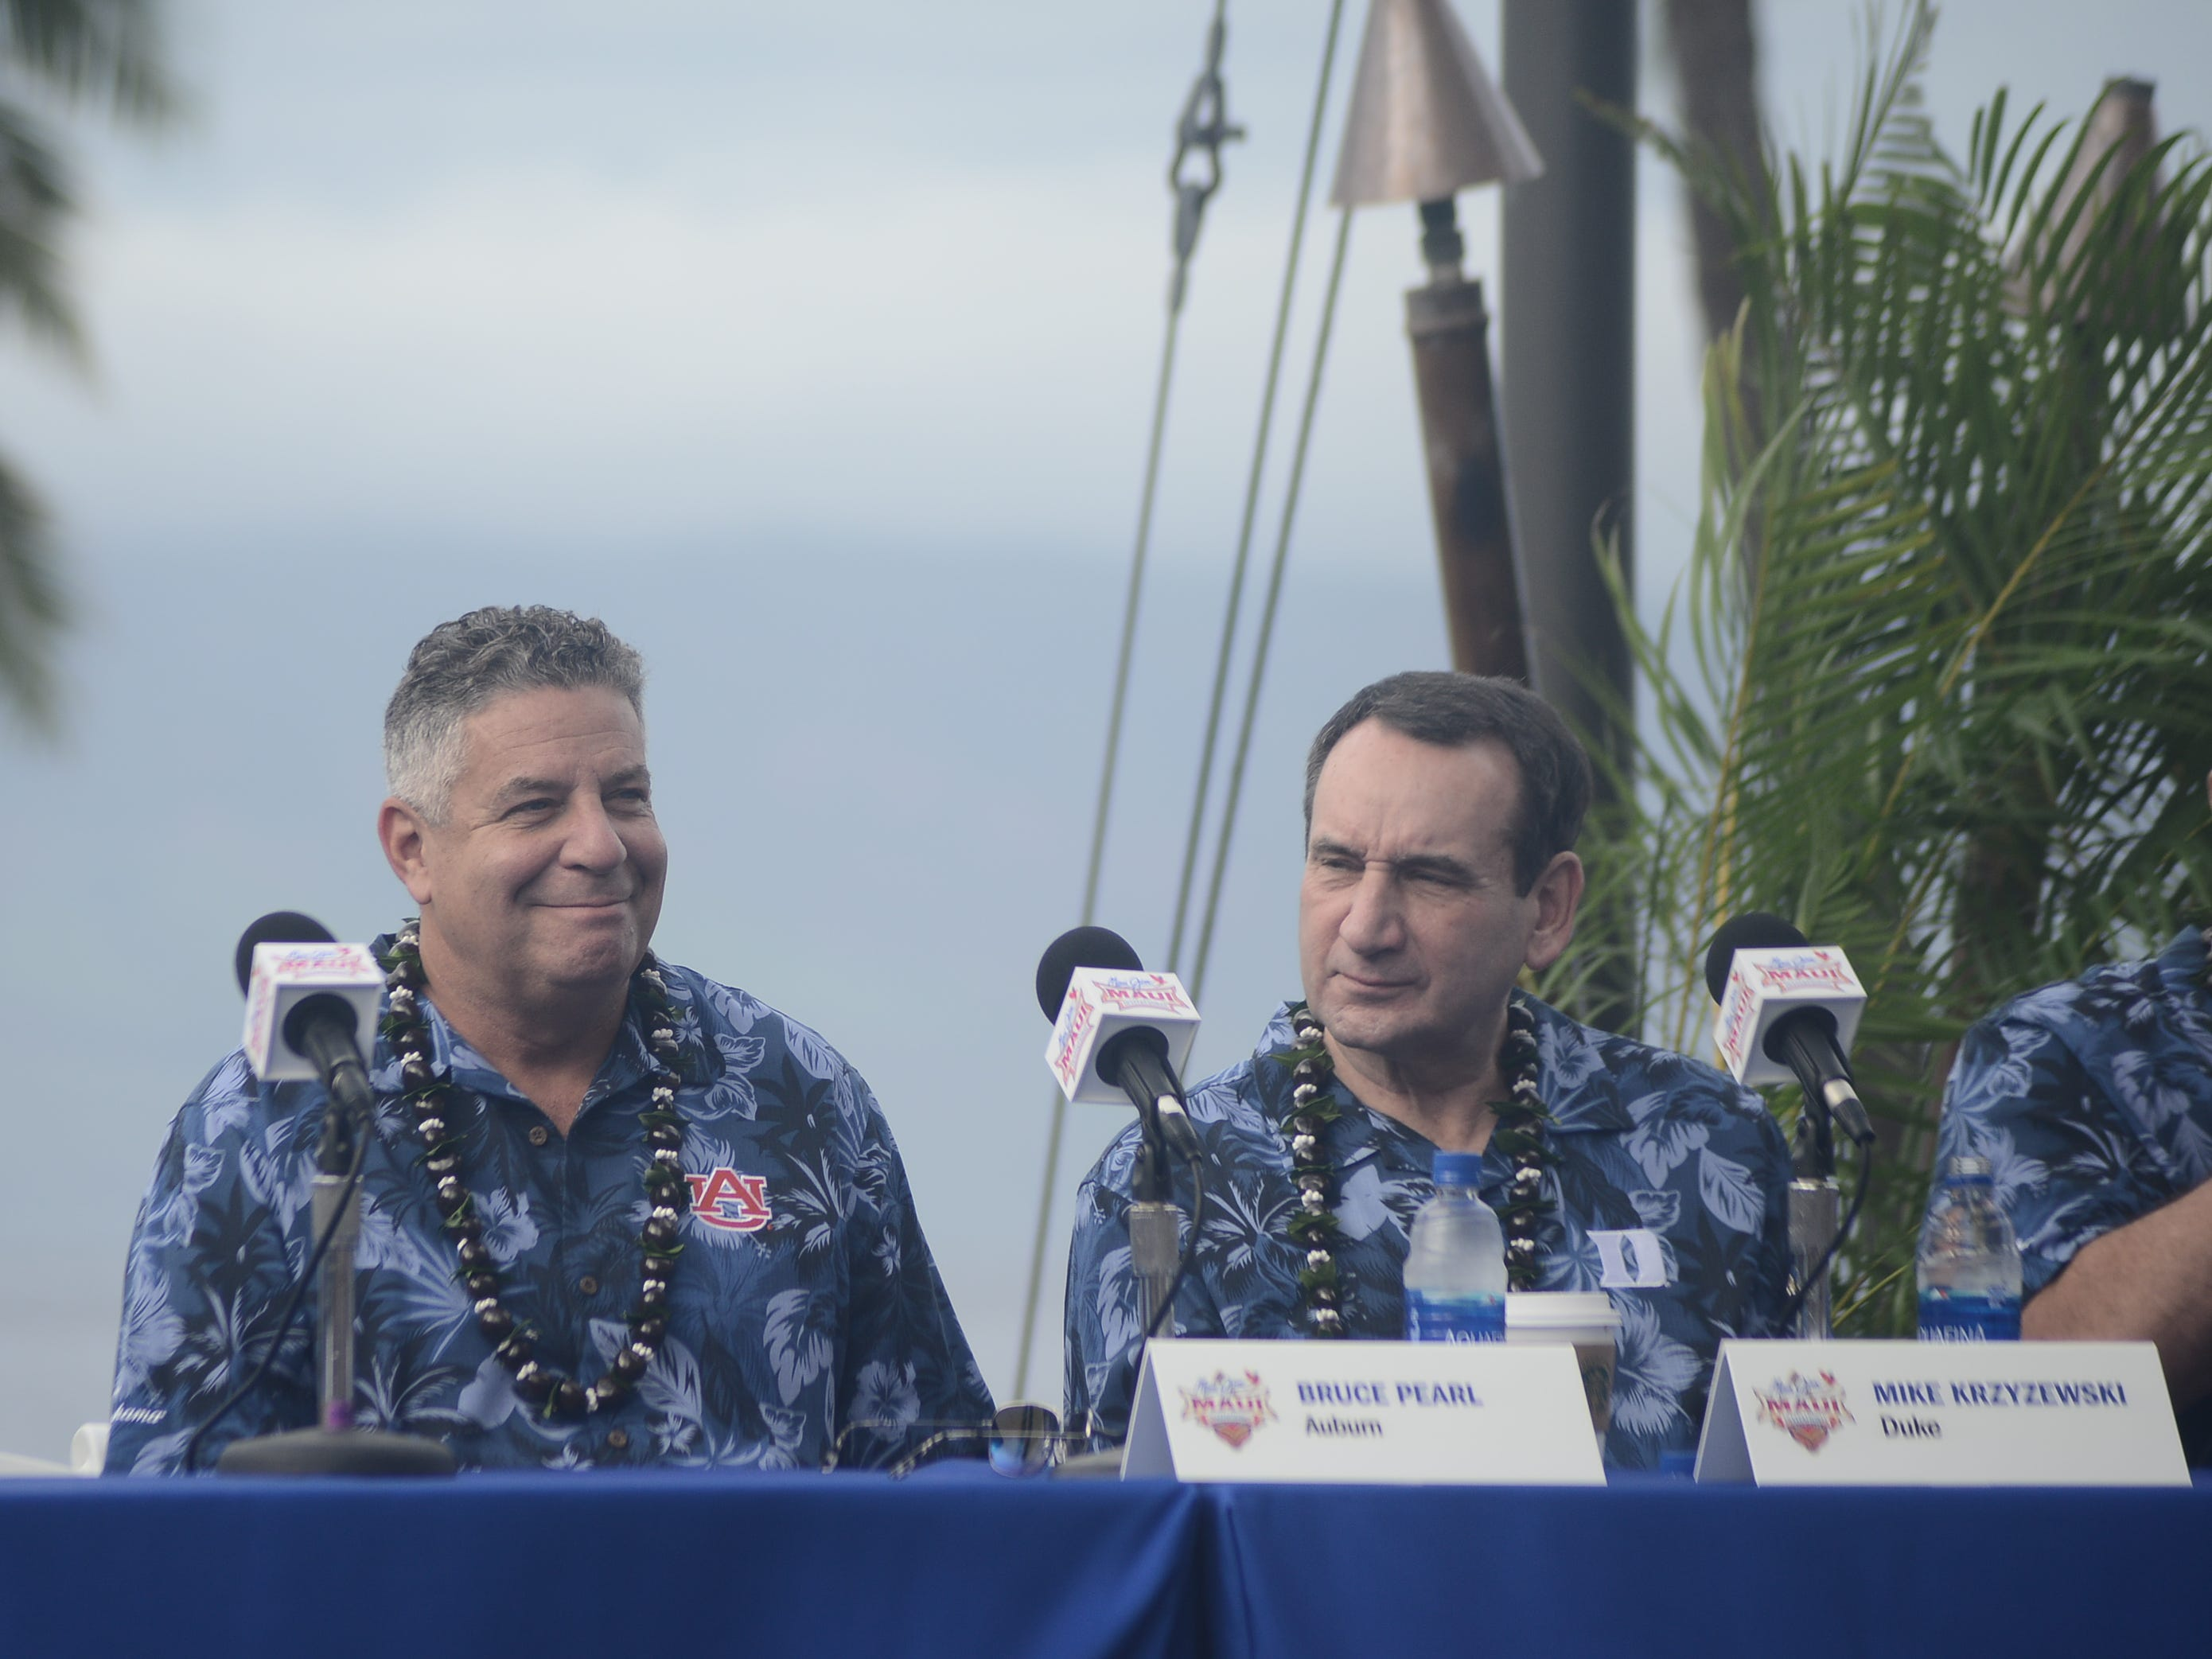 Auburn coach Bruce Pearl (left) and Duke coach Mike Krzyzewski during a press conference before the Maui Invitational in Hawaii.